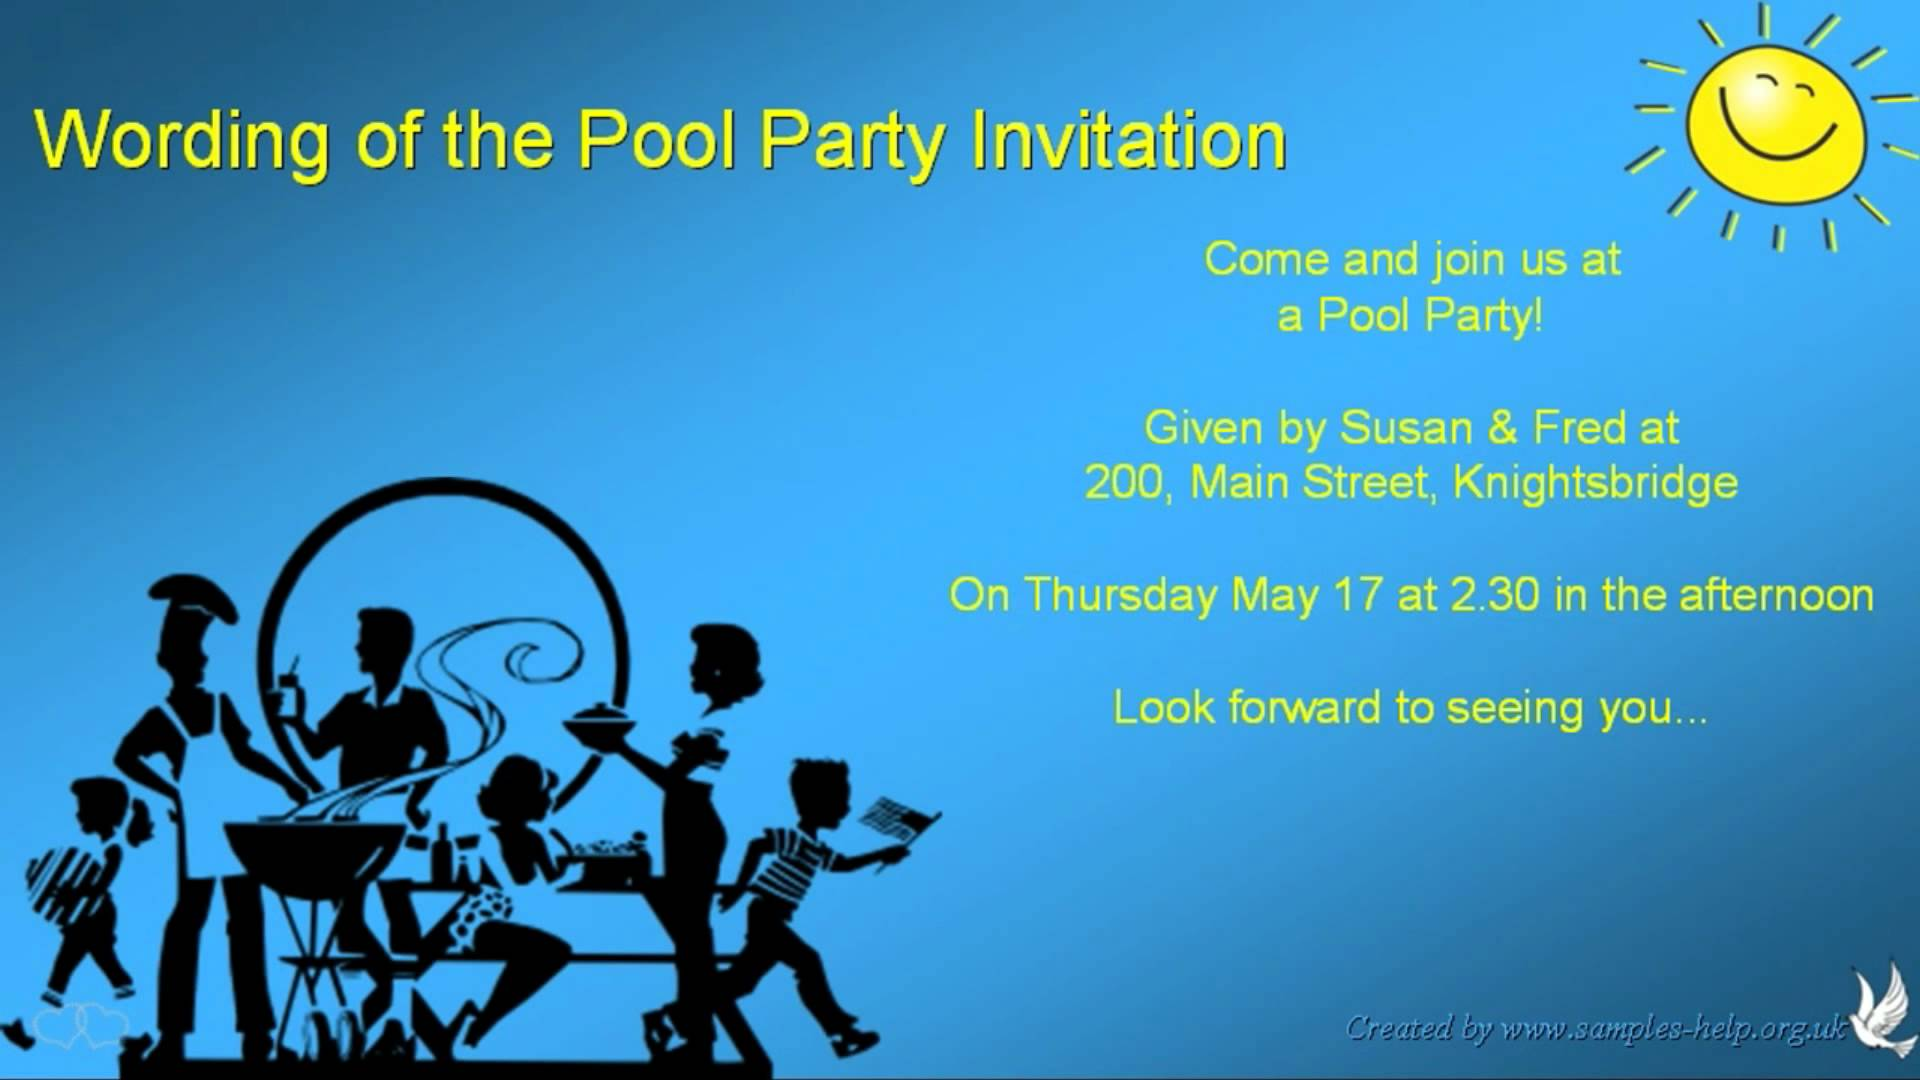 Pool Party Invitation Wording Ideas